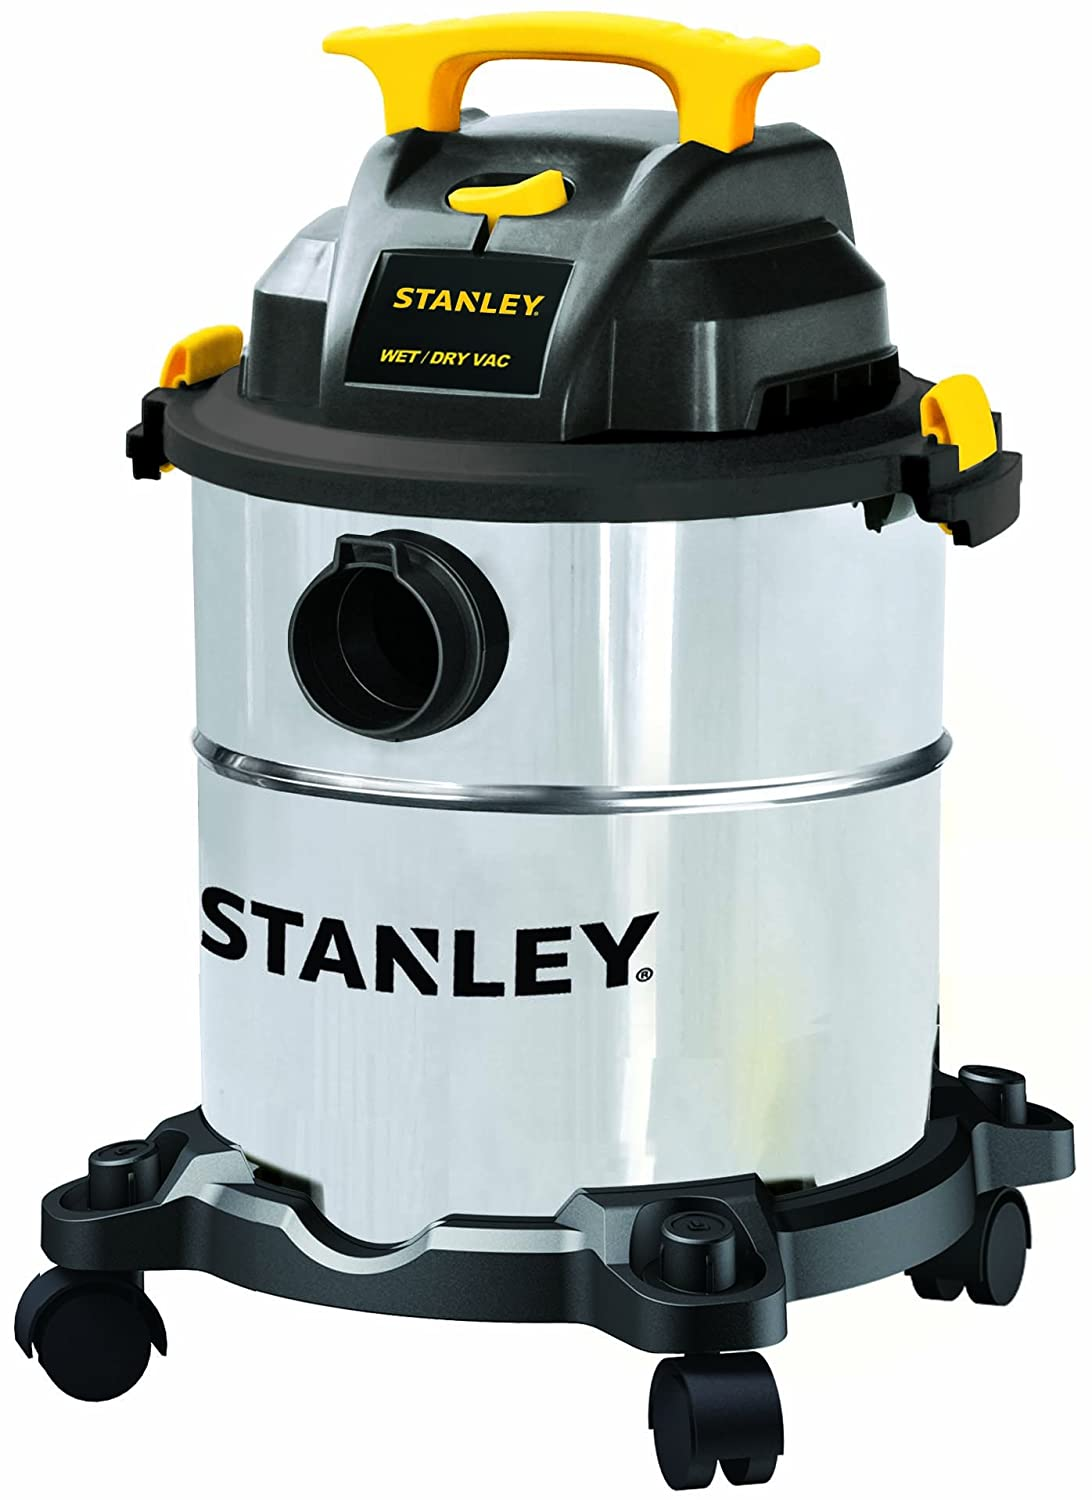 Stanley Wet/Dry Vacuum, 6 Gallon, 4 Horsepower, Stainless Steel Tank